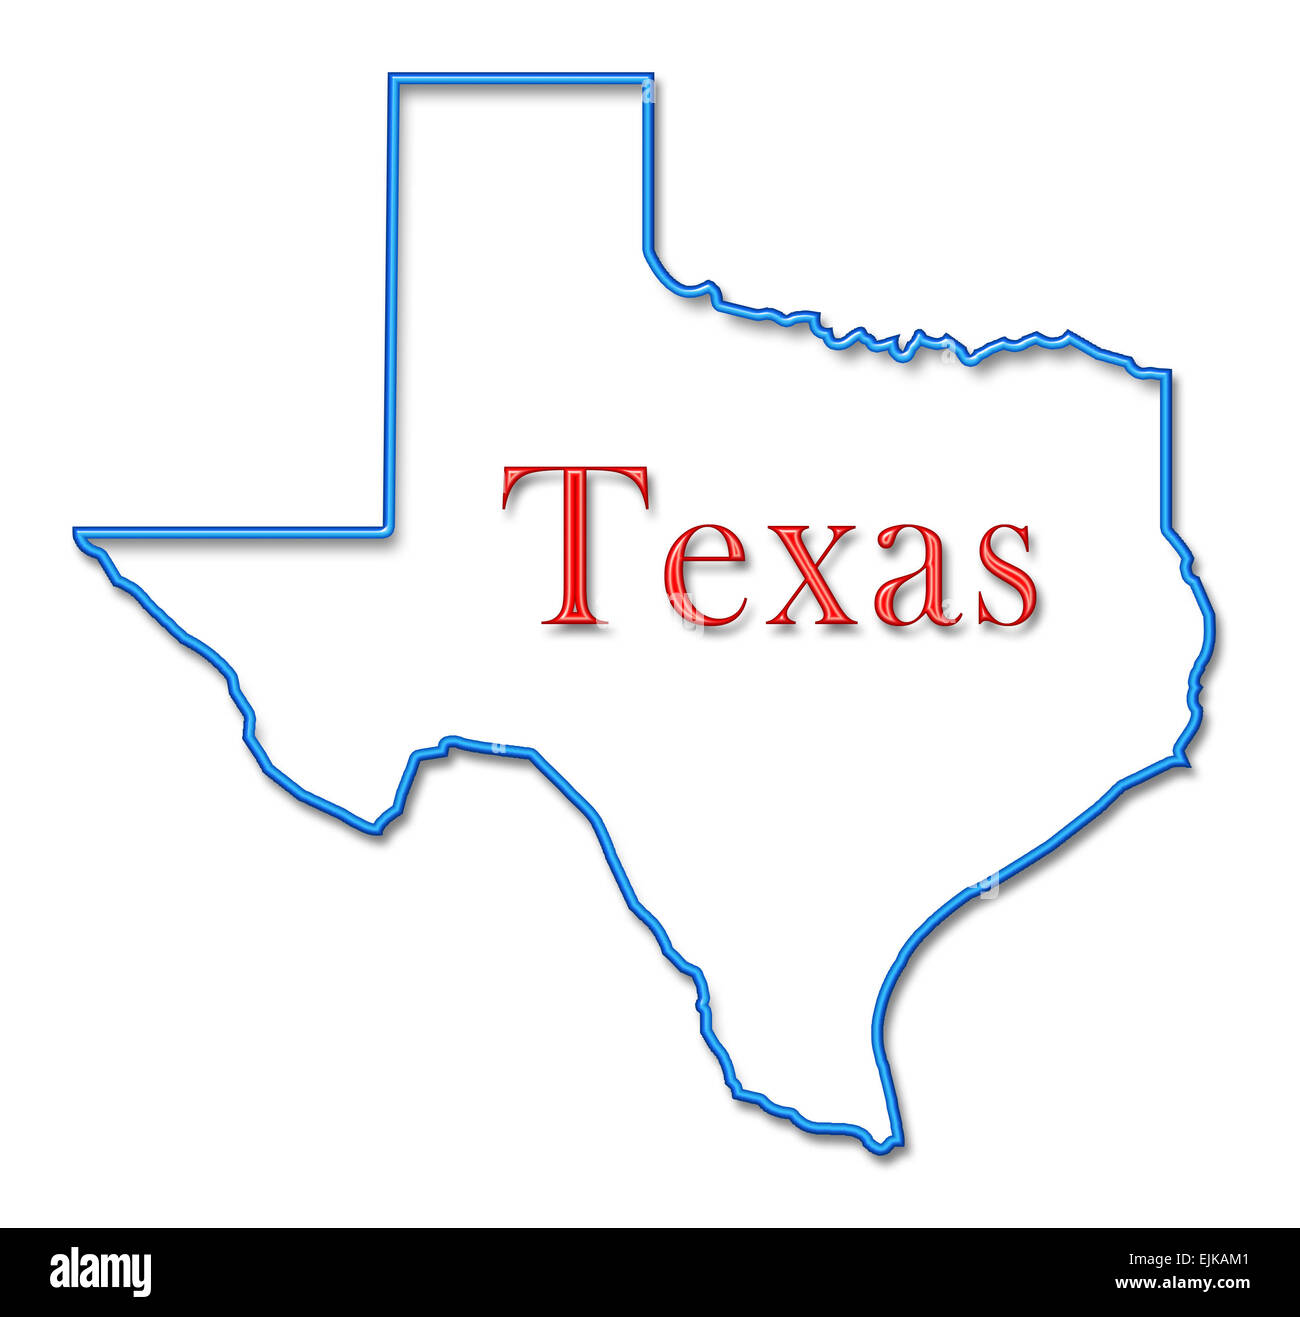 Outline Of Texas Map.Texas Map With Neon Blue Outline And Red Lettering Stock Photo